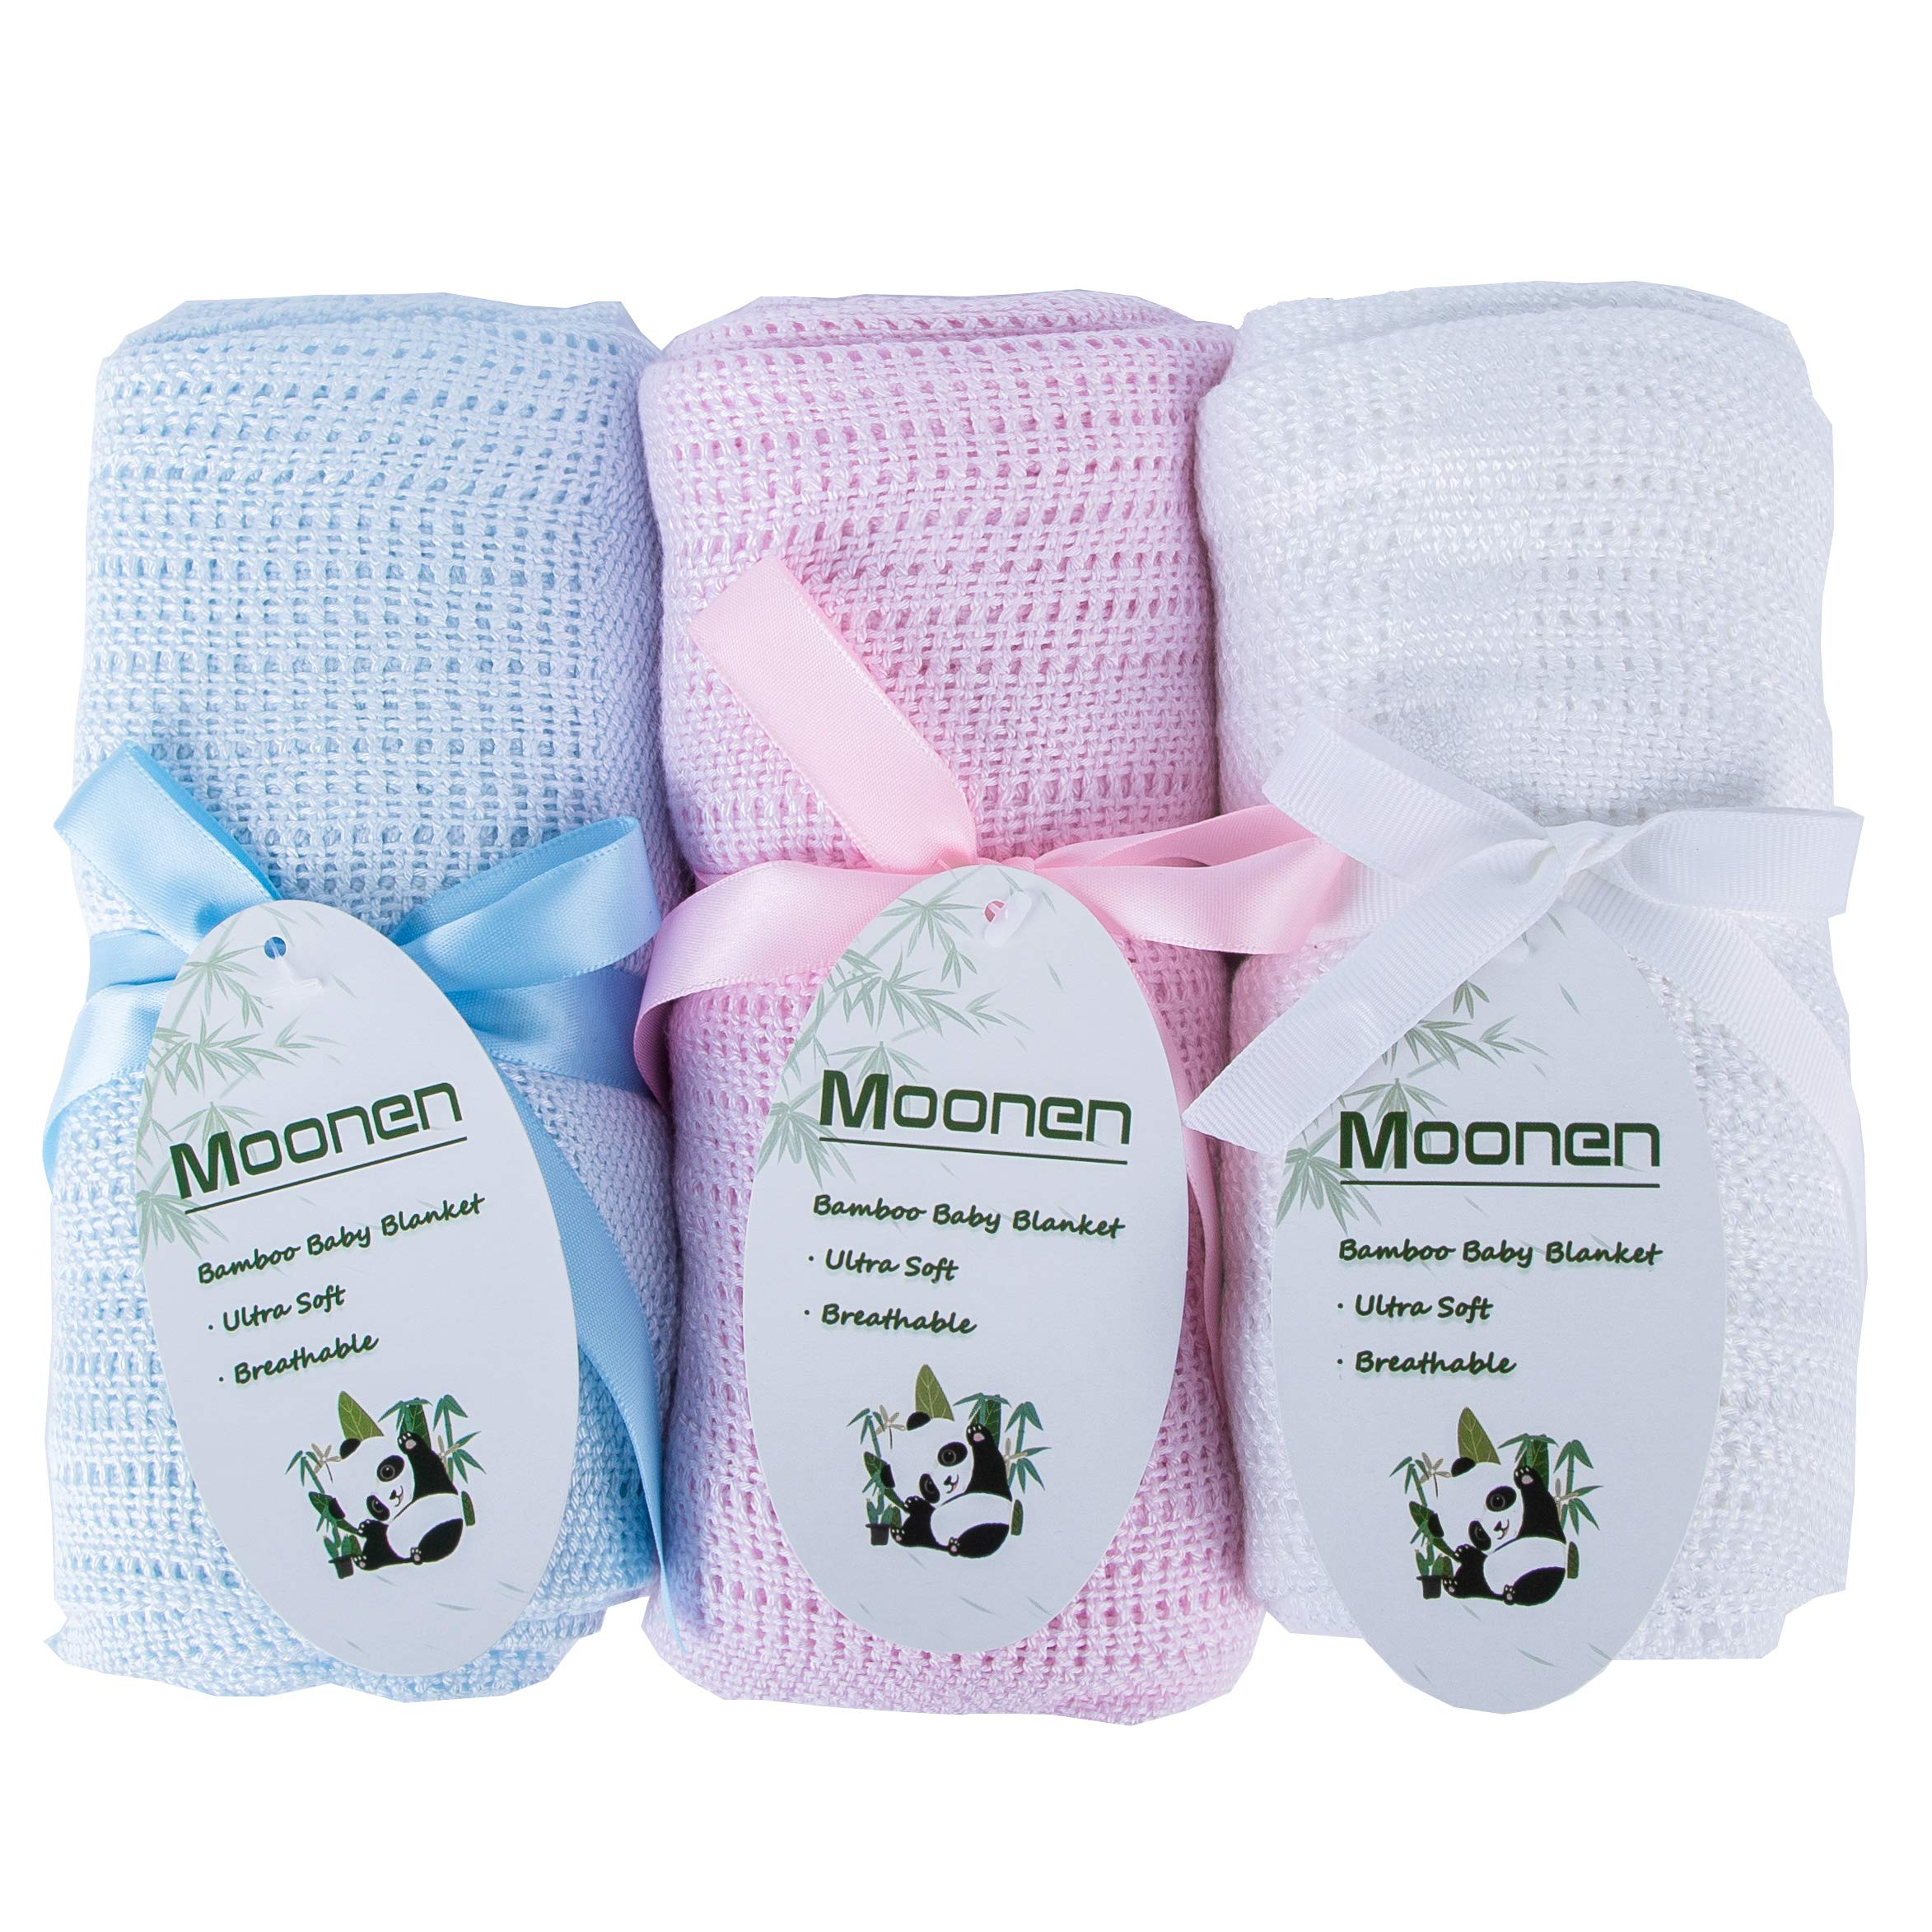 Moonen Bamboo Cellular Baby Blanket Unique Extra Soft Breathable Swaddle Crochet Blanket White Color Toddler Blankets Knitted Cellular Baby Blankets for Baby or Toddler (White, 60 x 90 cm)